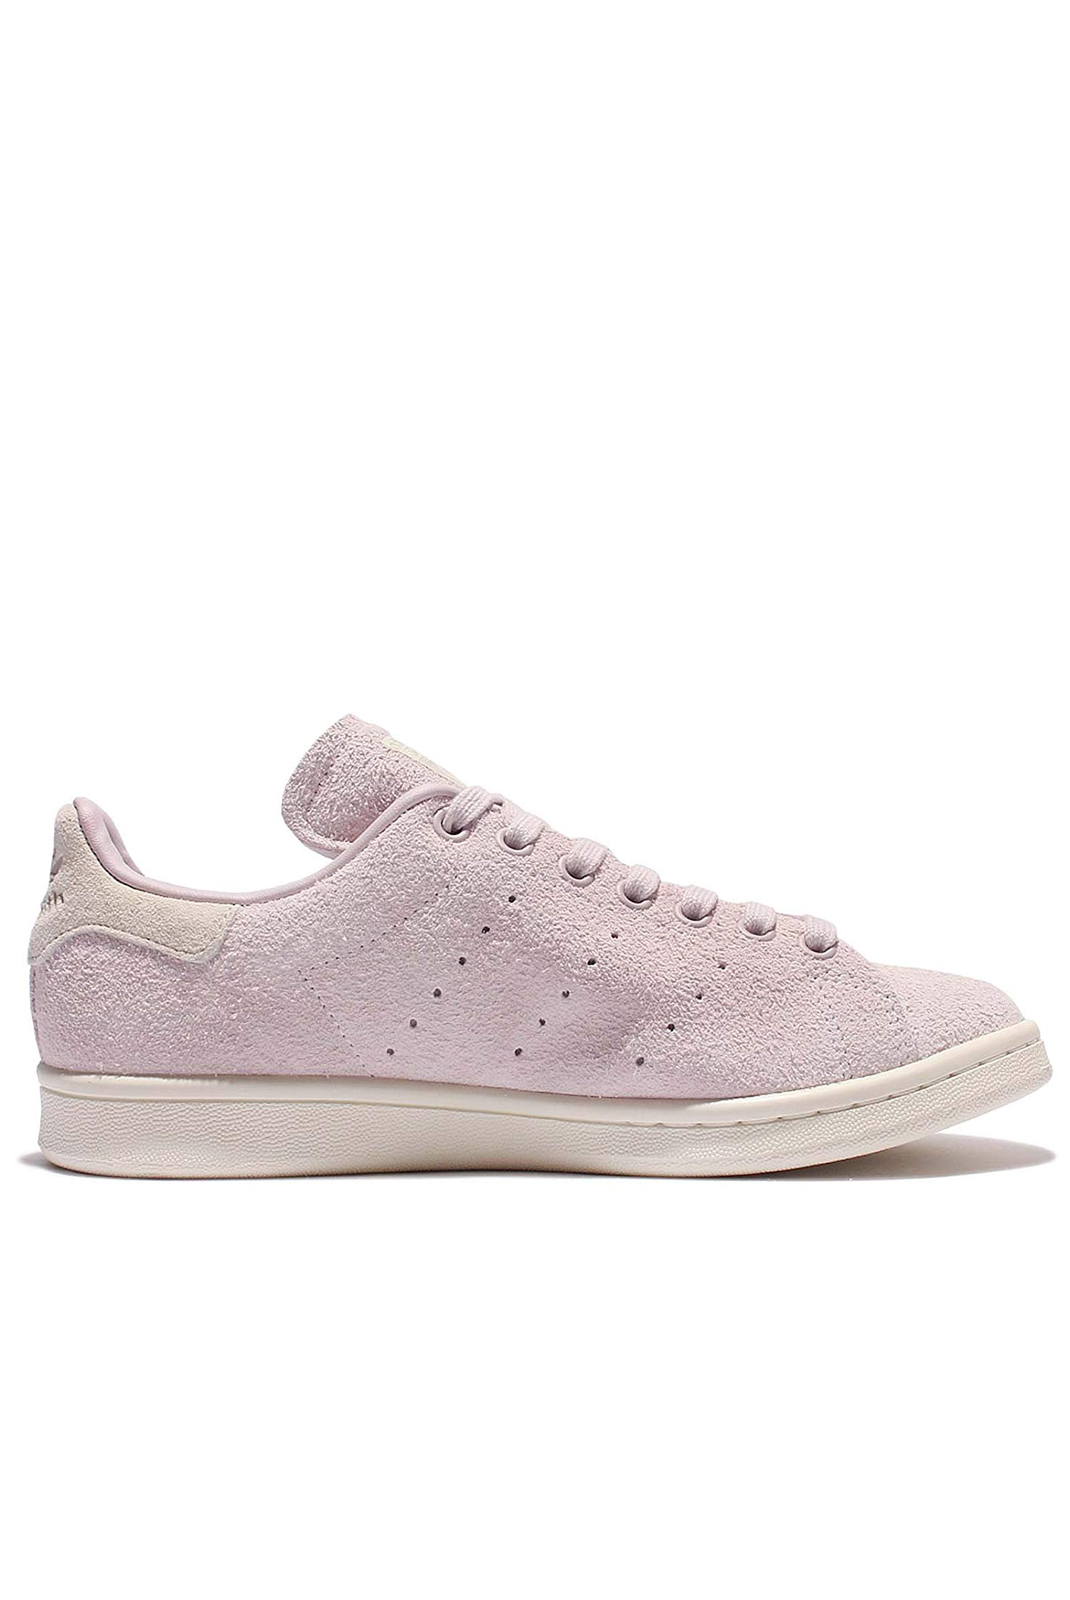 Baskets / Sneakers  Adidas S82258 STAN SMITH W ROSE